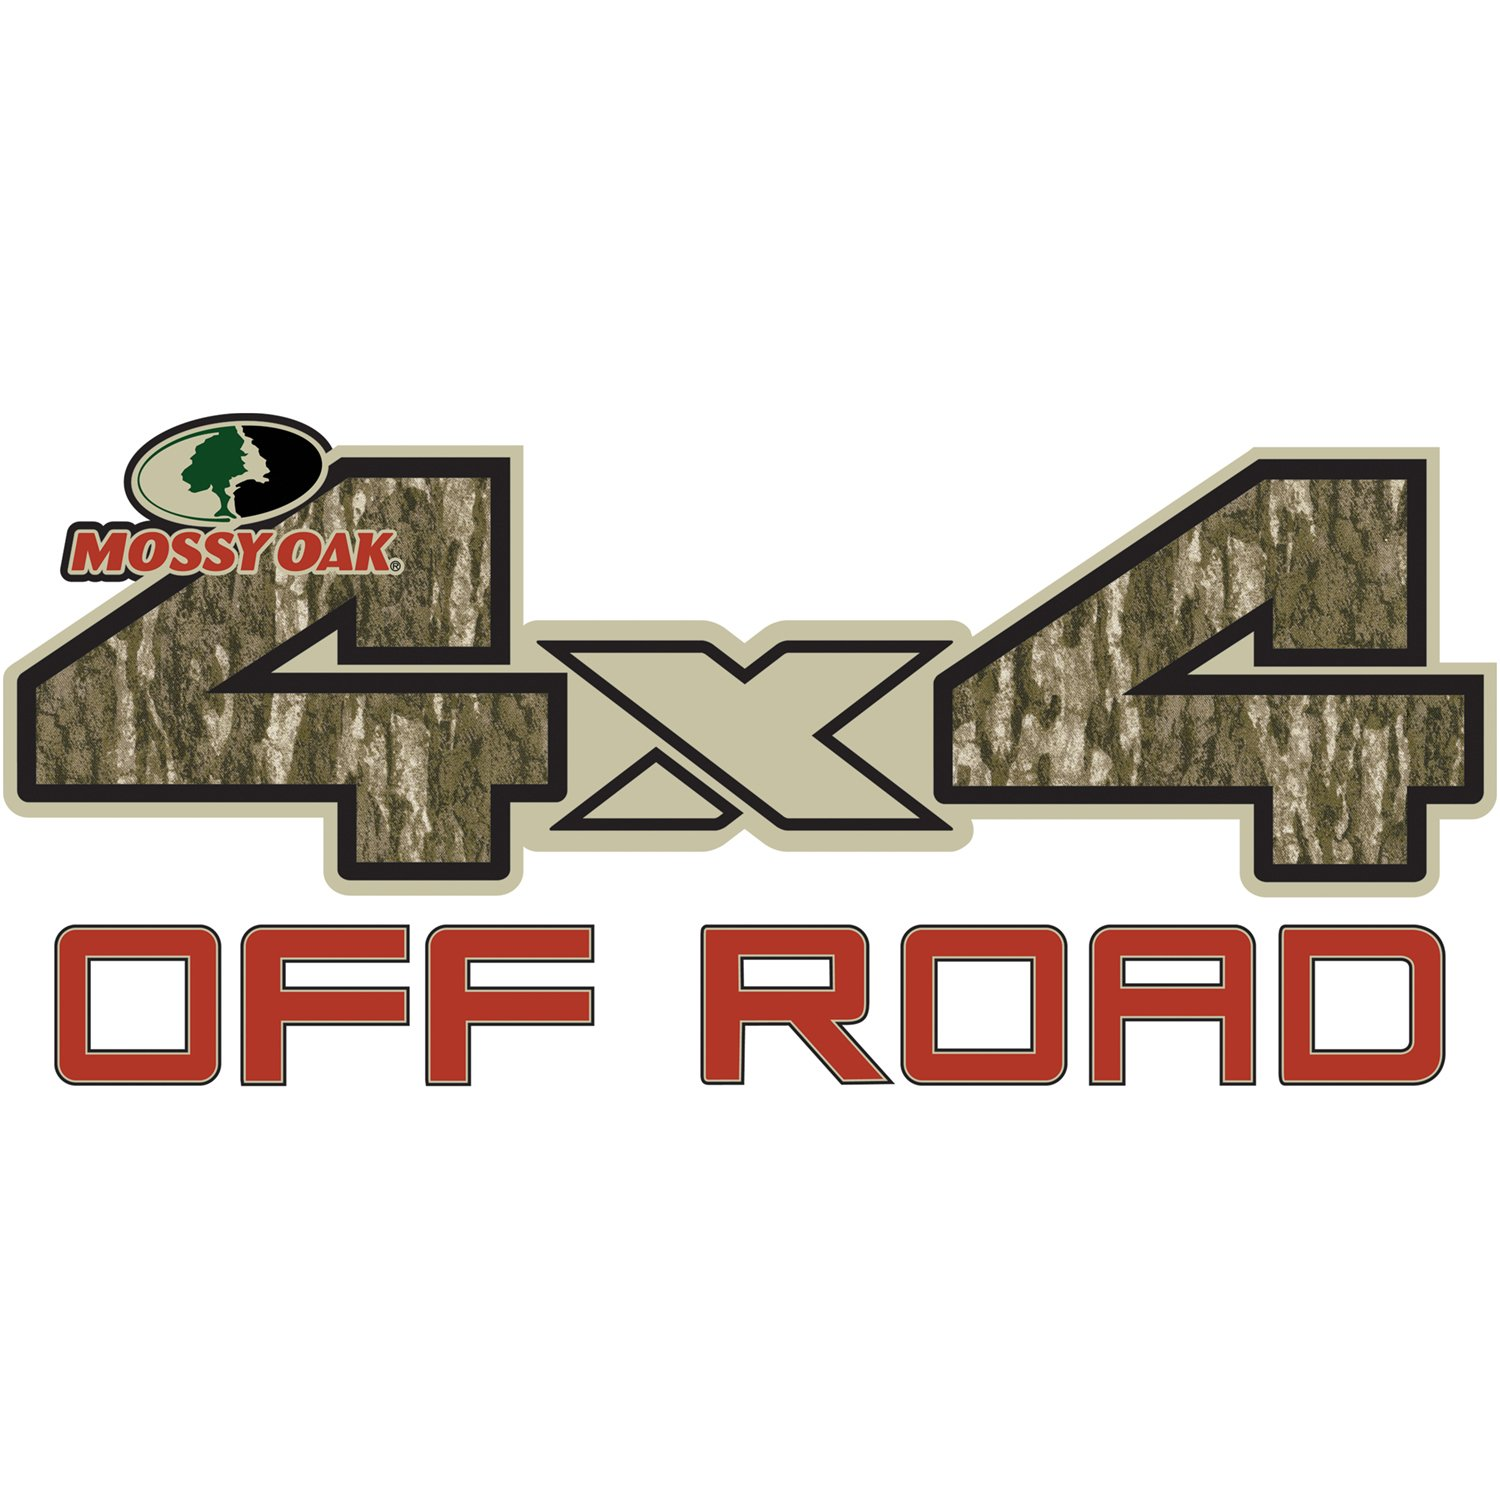 Mossy Oak Graphics 13002-BL-L Bottomland 17.75 x 8 4x4 Off-Road Style Decal